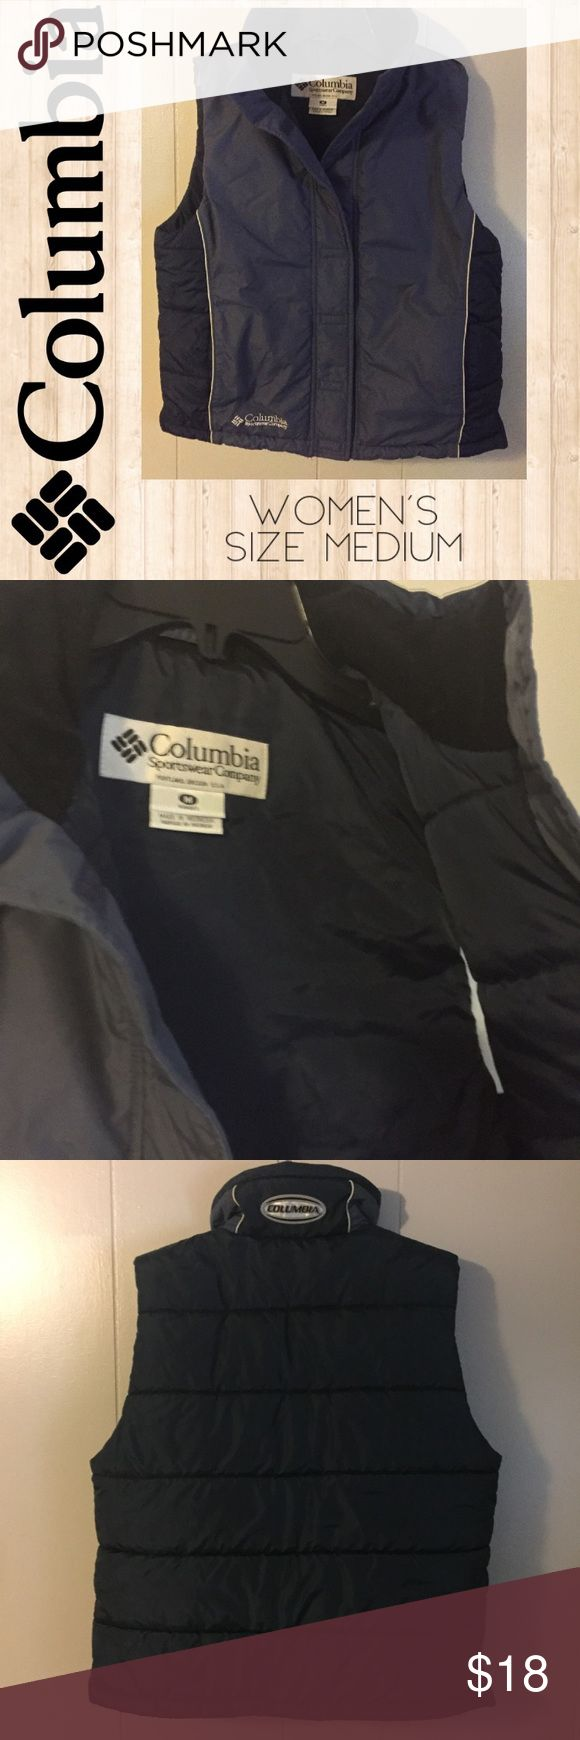 "Columbia Ski Vest EUC Like new! Women's Columbia brand ski/snow (snowmobile?) vest in excellent condition! Dark grayish blue, navy blue and black fleece trim around inside collar. Very soft like down feathers. Velcro closure. Very clean. No flaws!  Length is approximately 24"" Bust (armpit to armpit) is approximately 20 1/2"" Lots of nice, name brand women's, men's and children's clothing available in my closet. I love to give discounts for bundle purchases! Columbia Jackets & Coats Vests"